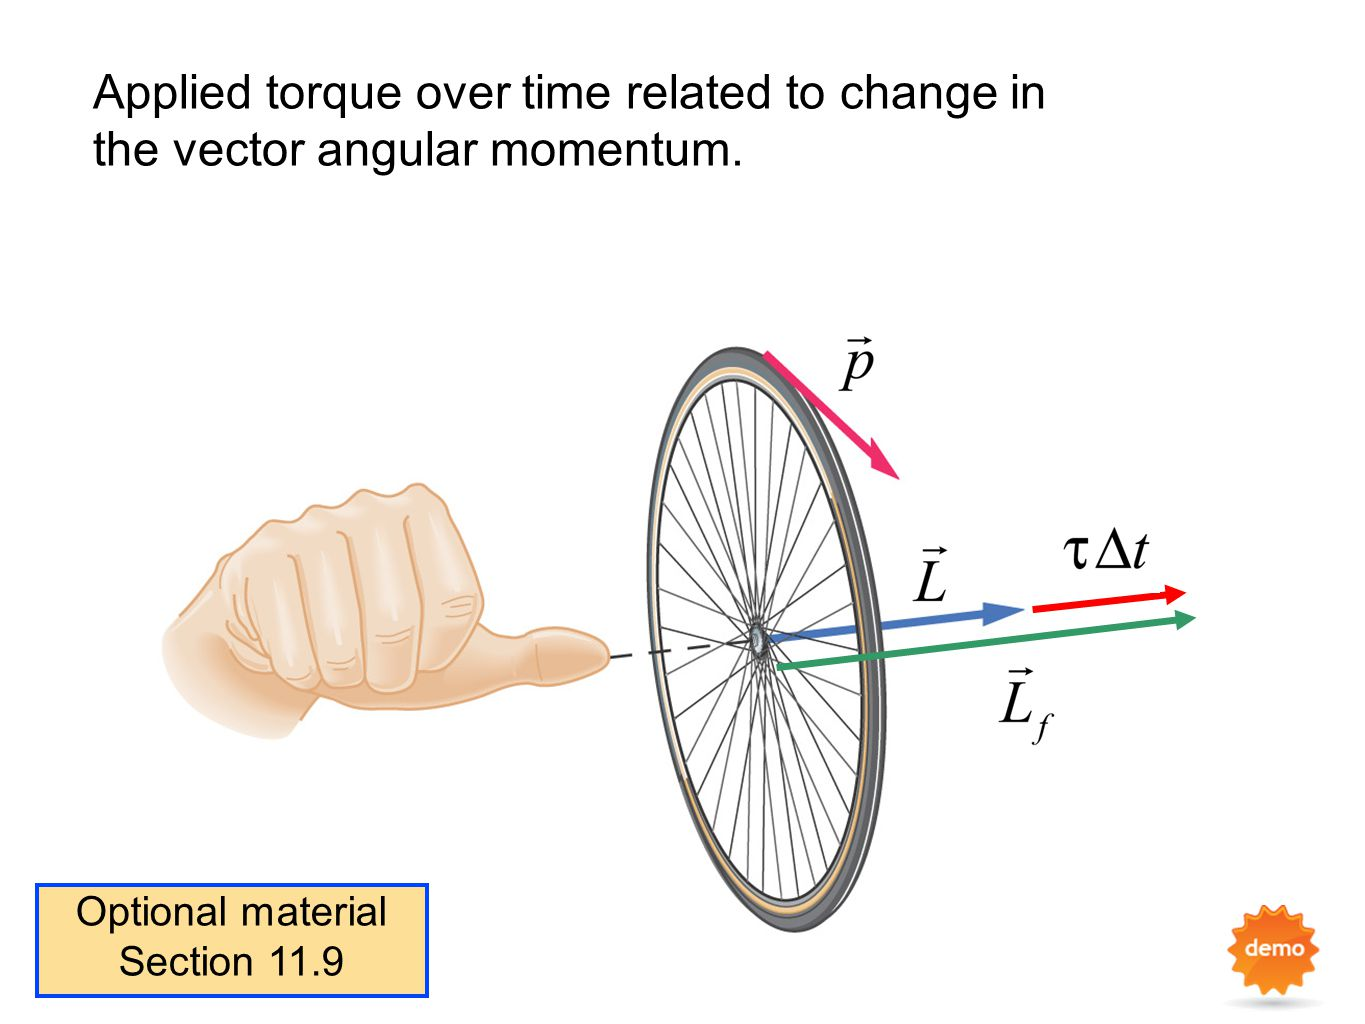 Applied torque over time related to change in the vector angular momentum.